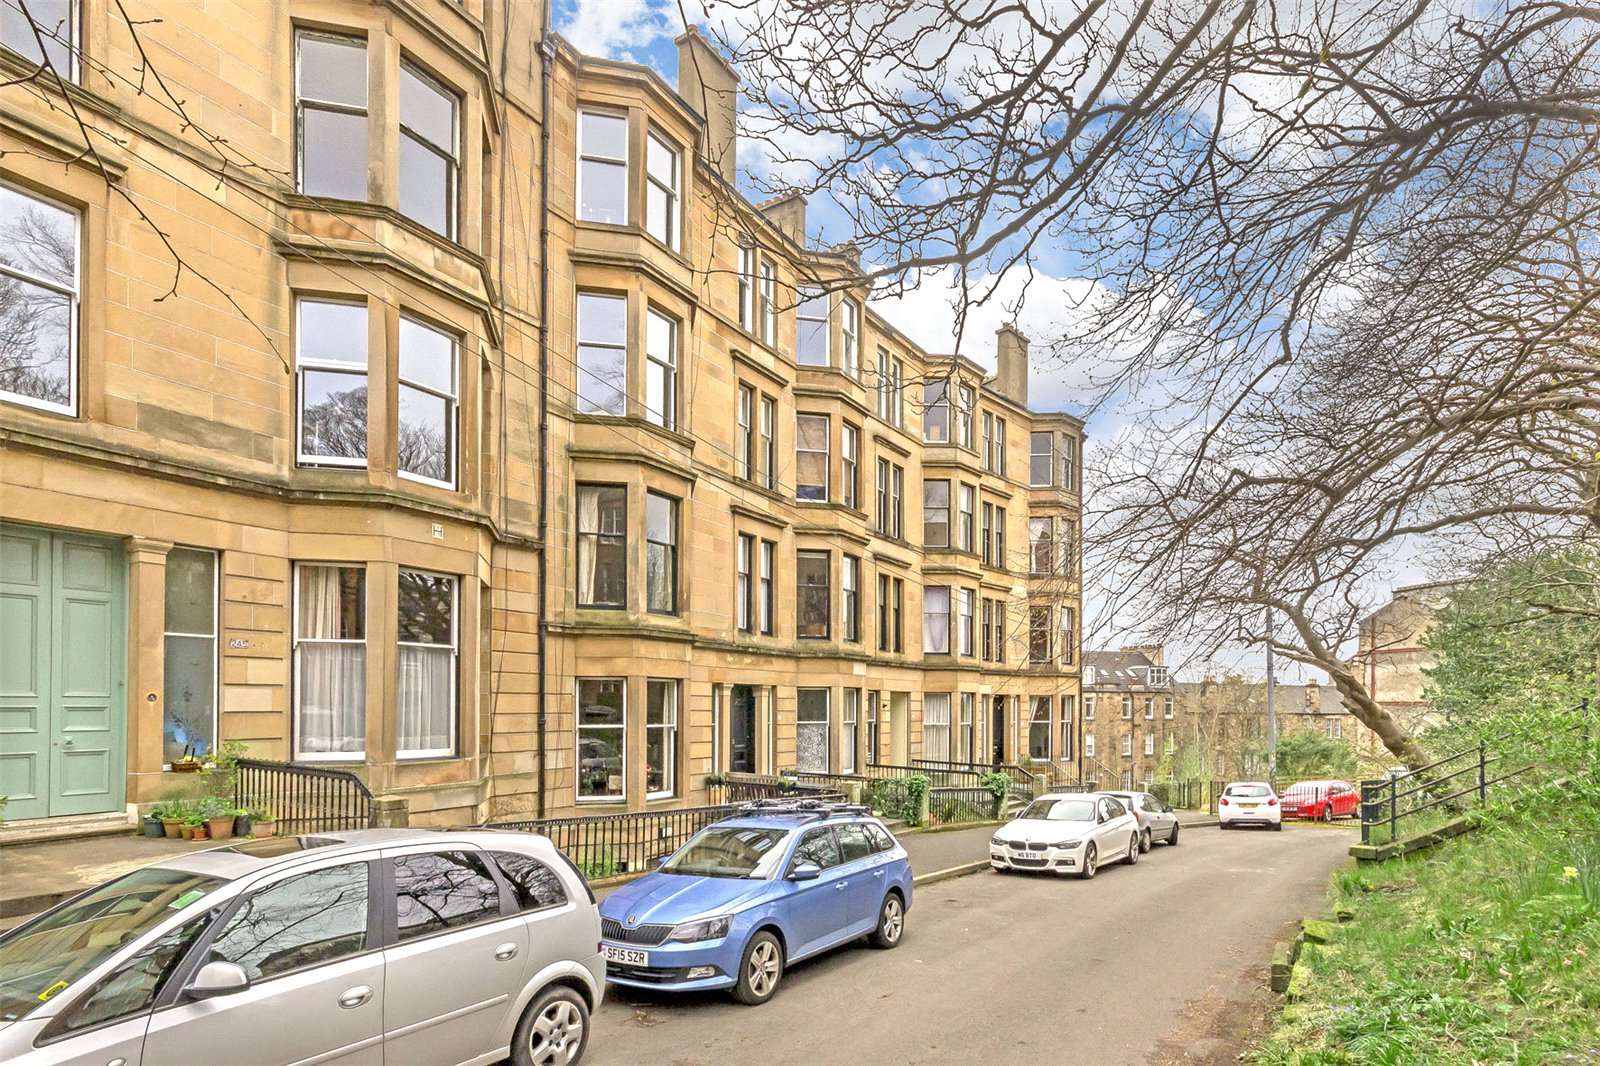 Glasgow Property of the Week: 3/2, 255 Wilton Street